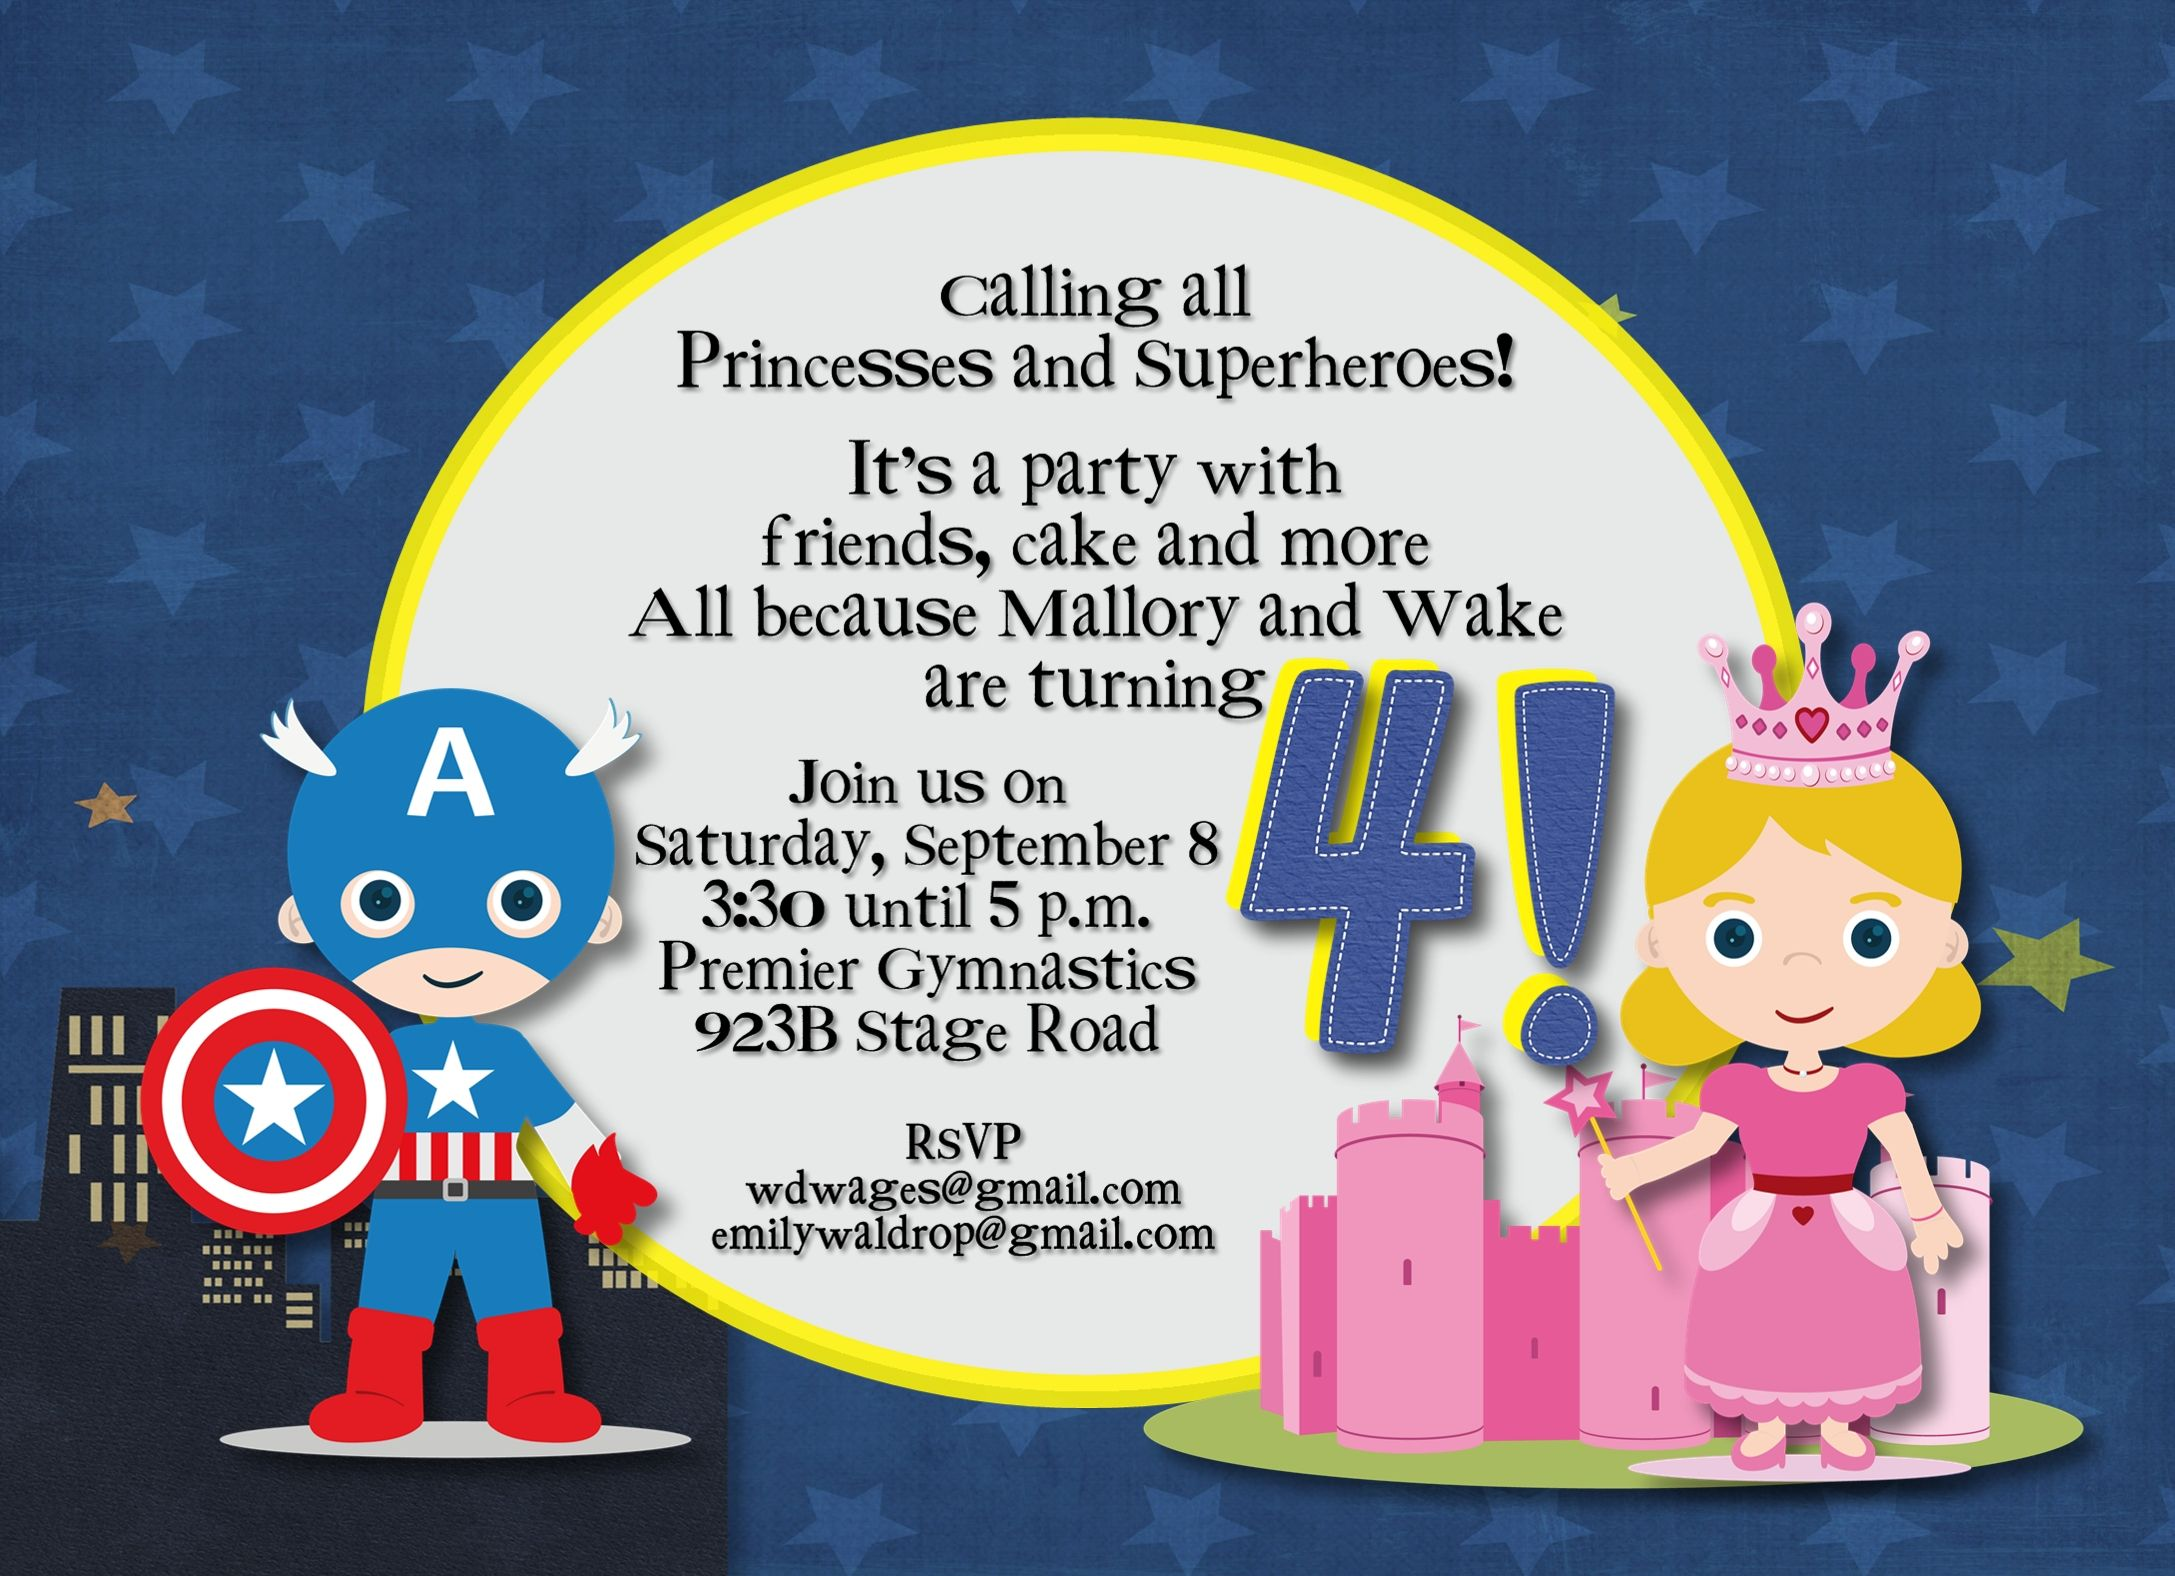 Superhero and Princess Party | WDWdesigns | Pinterest | Princess ...